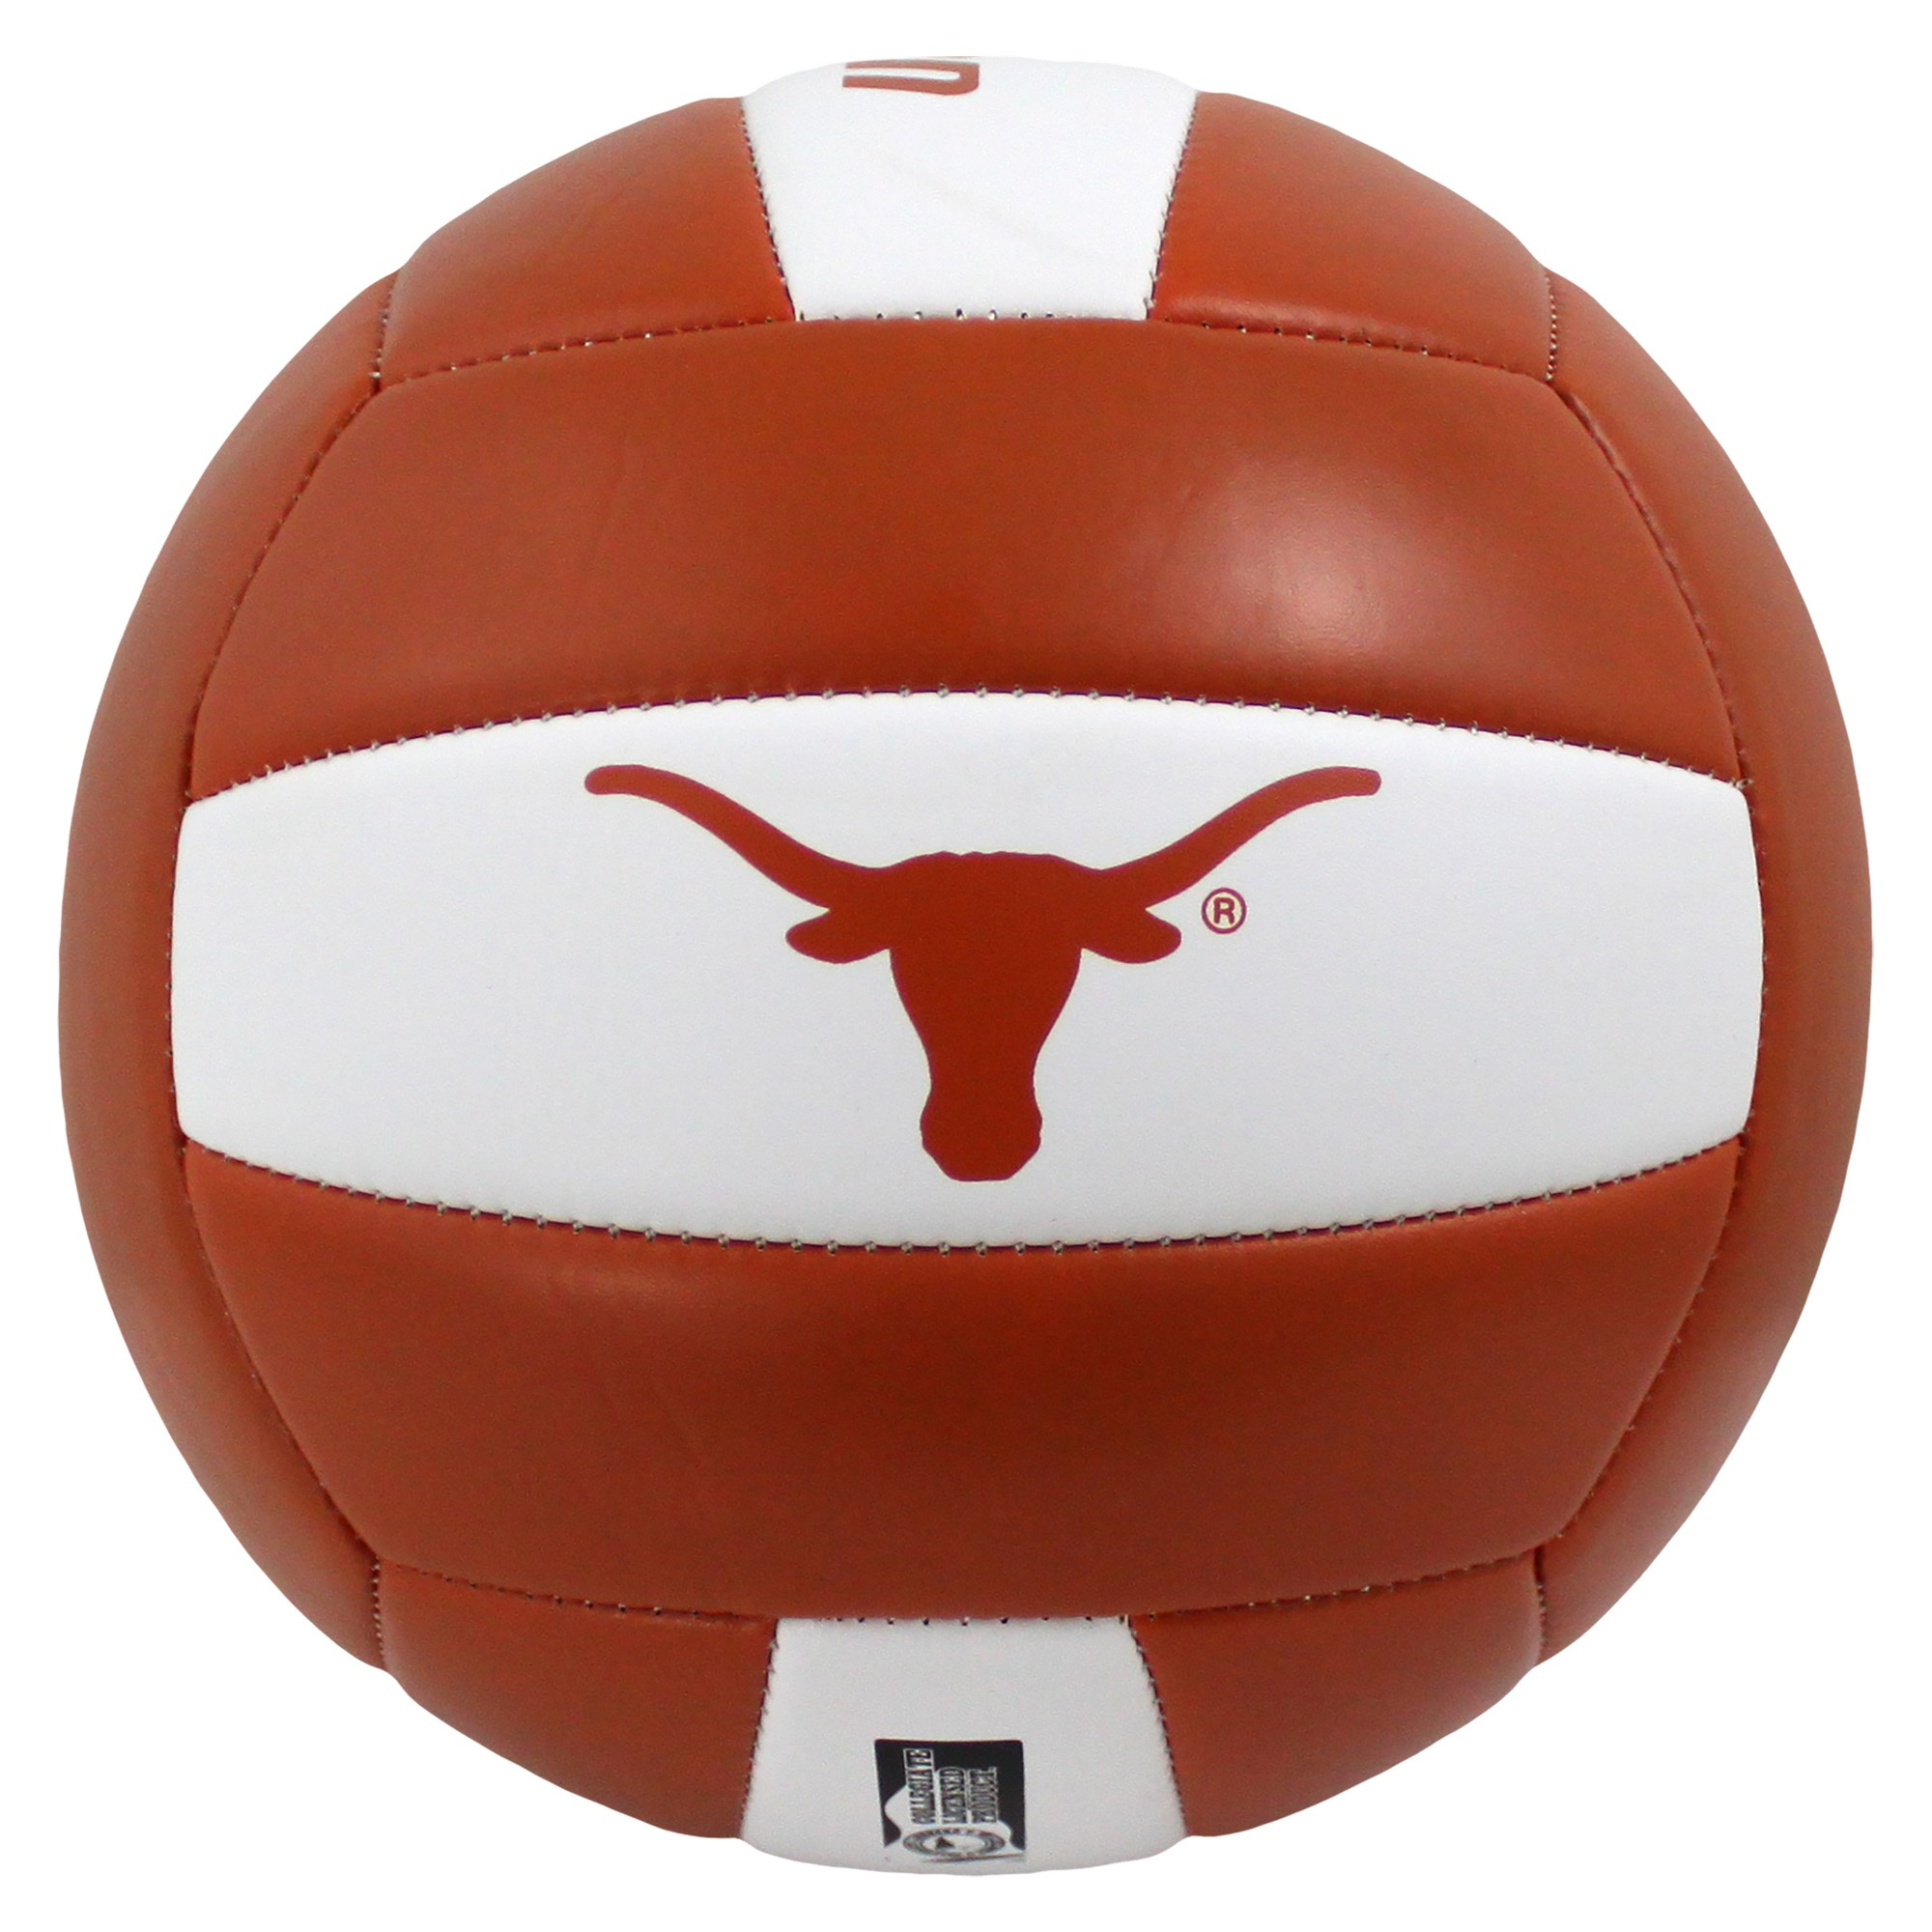 Texas Longhorns Vintage Mini Football Volleyball Volleyball Skills Texas Longhorns